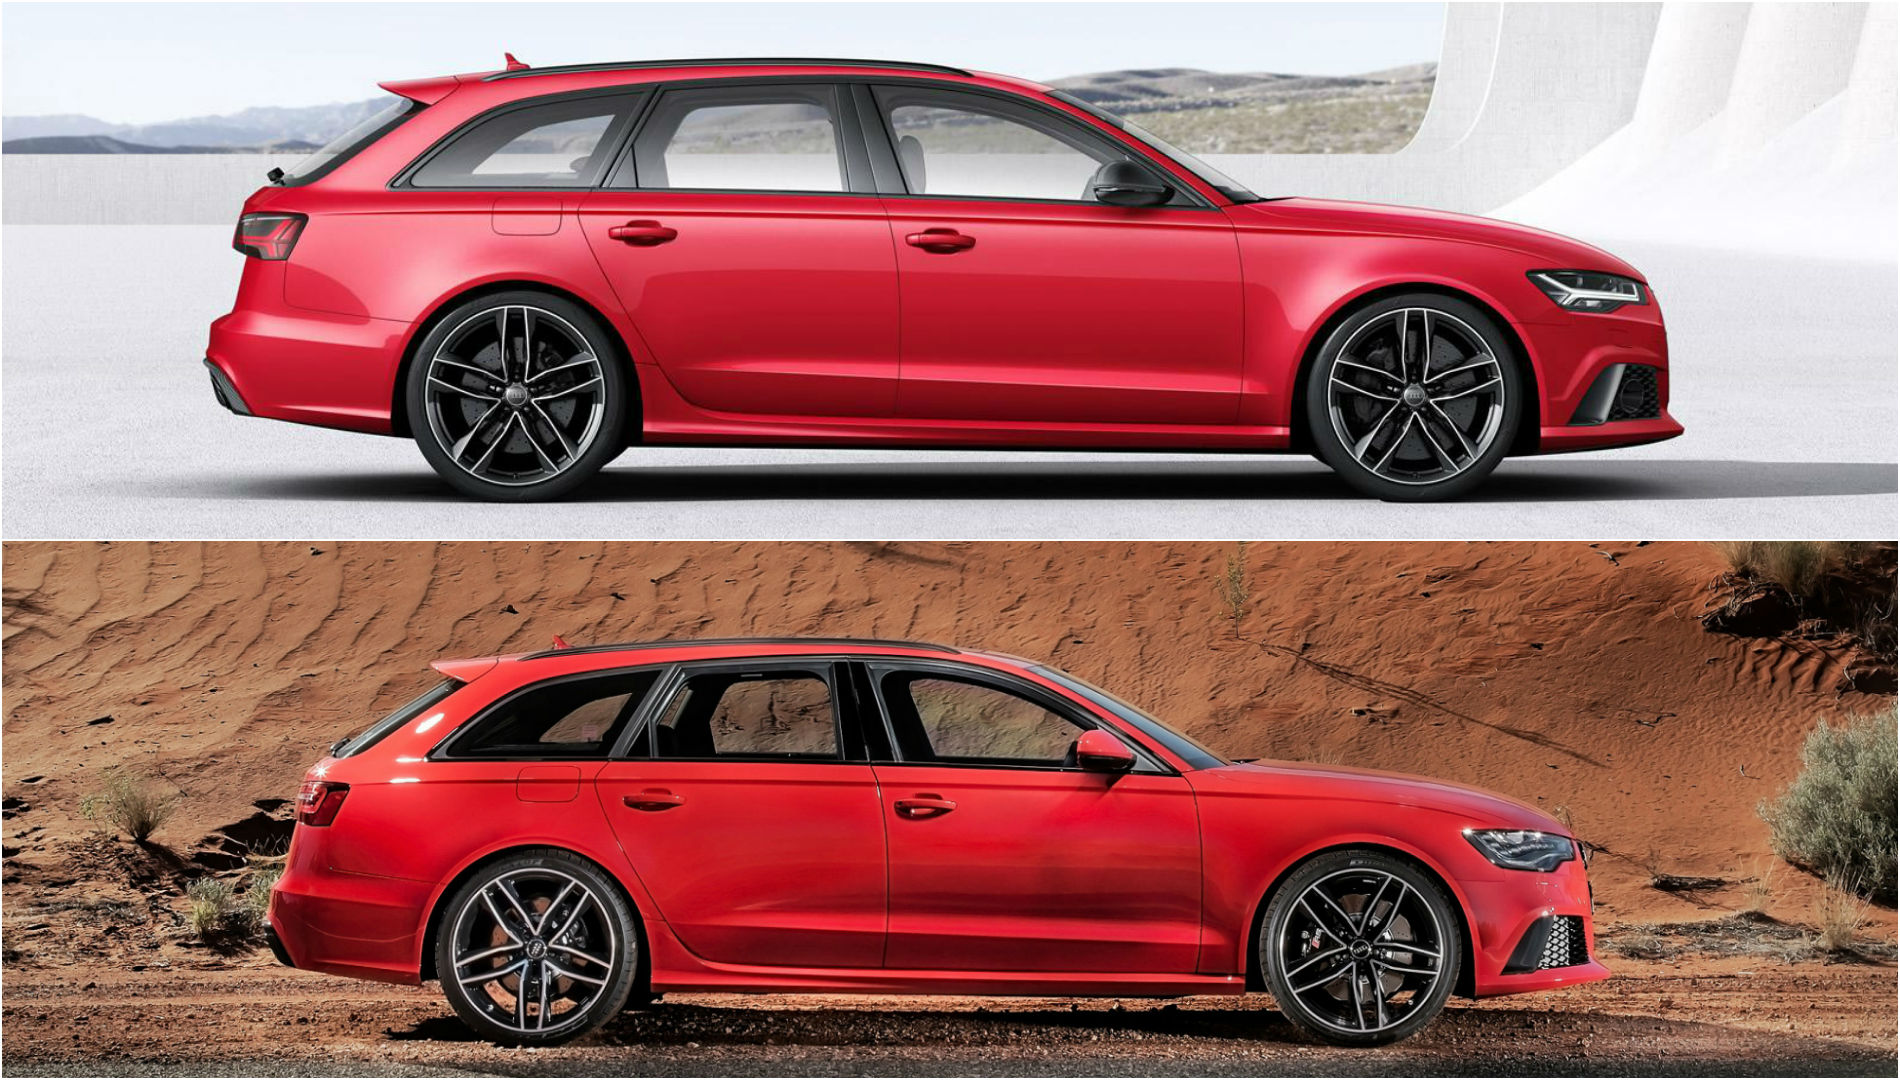 2015 audi rs6 avant facelift photo comparison subtle cosmetic changes autoevolution. Black Bedroom Furniture Sets. Home Design Ideas